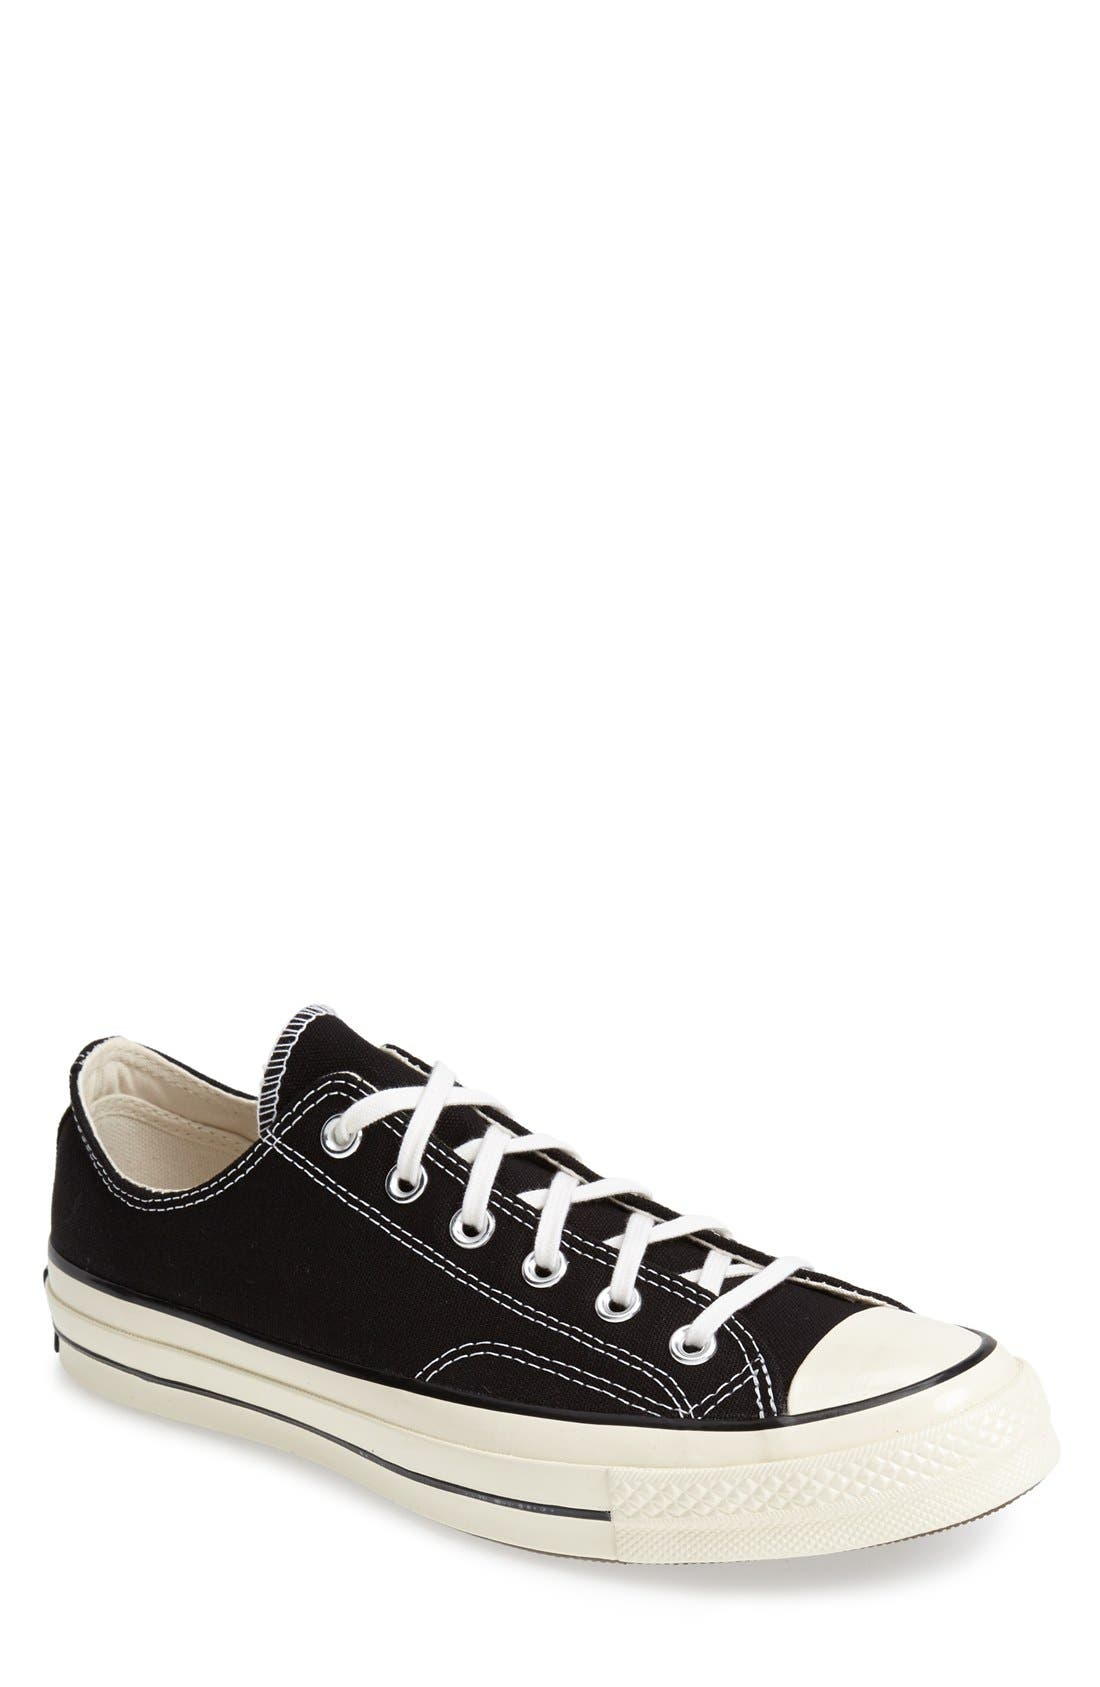 Chuck Taylor<sup>®</sup> All Star<sup>®</sup> '70 Low Sneaker,                             Main thumbnail 1, color,                             Black